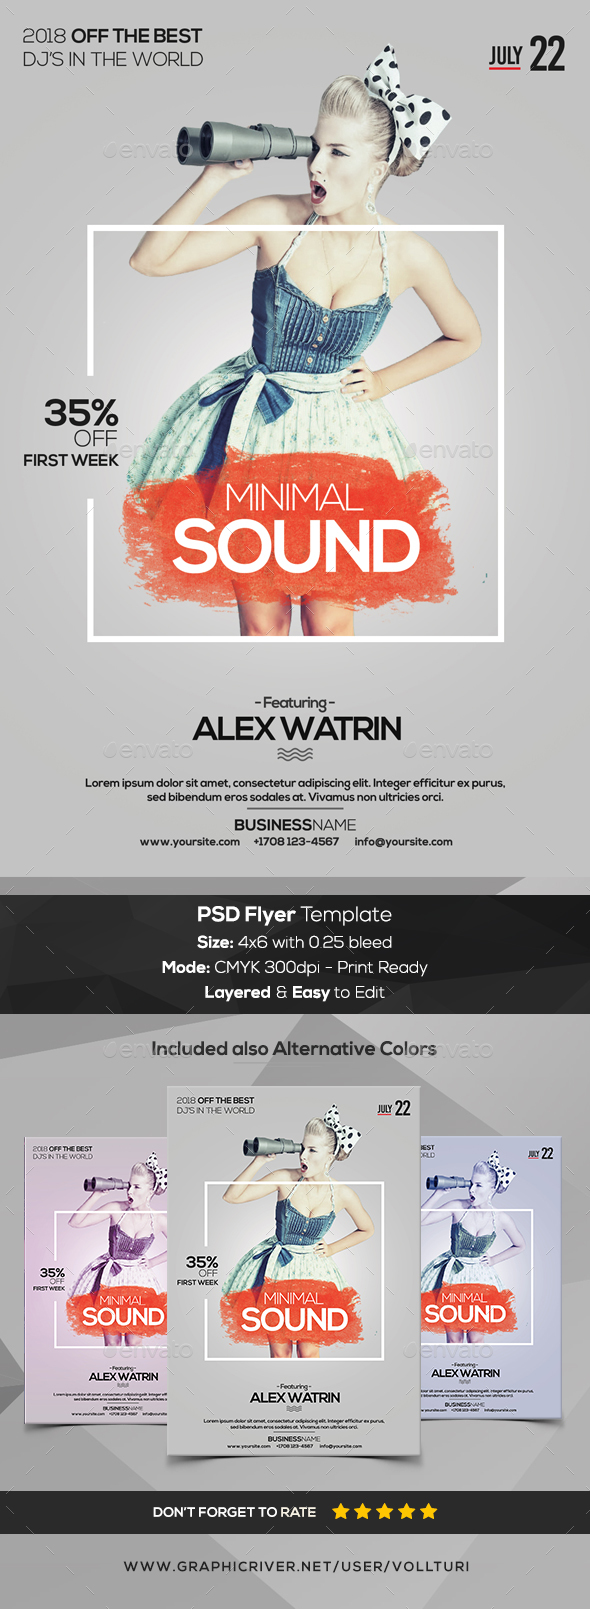 Minimal Sound - PSD Flyer Template - Flyers Print Templates